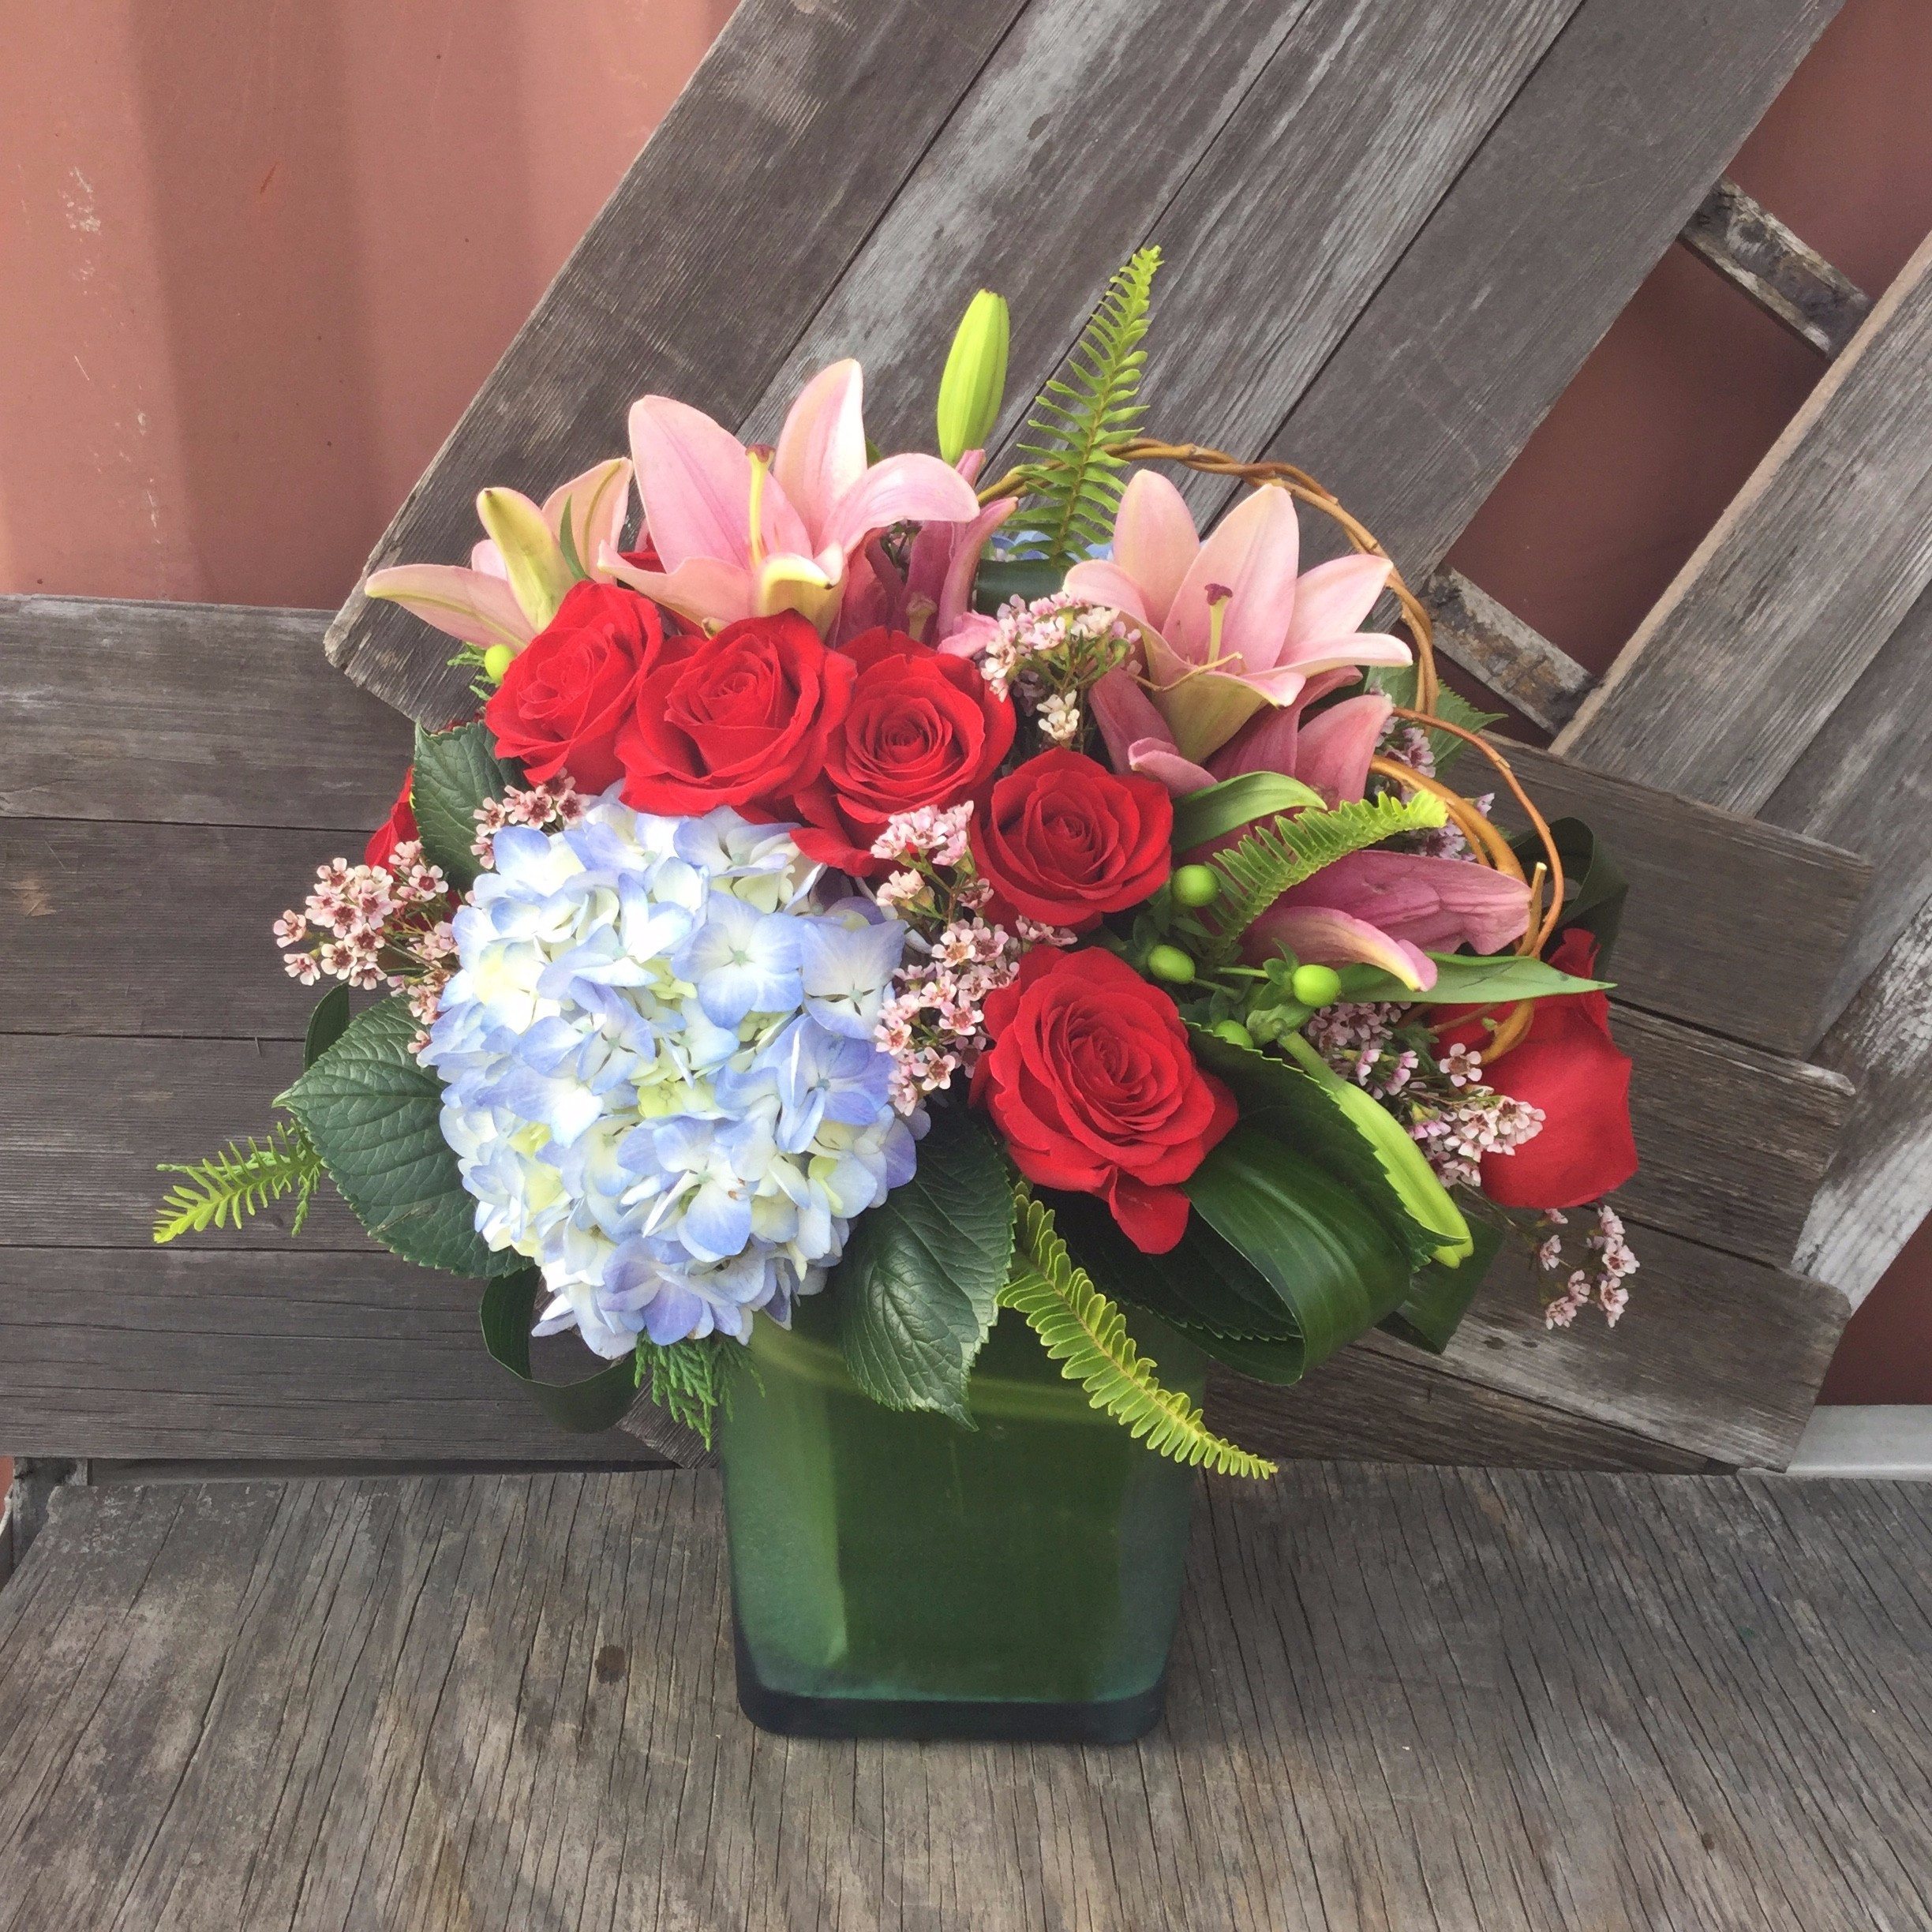 Headstone Vase Flower Arrangements Of New orleans Florist Flower Delivery by Monas Accents Pertaining to Extravagant Blooms